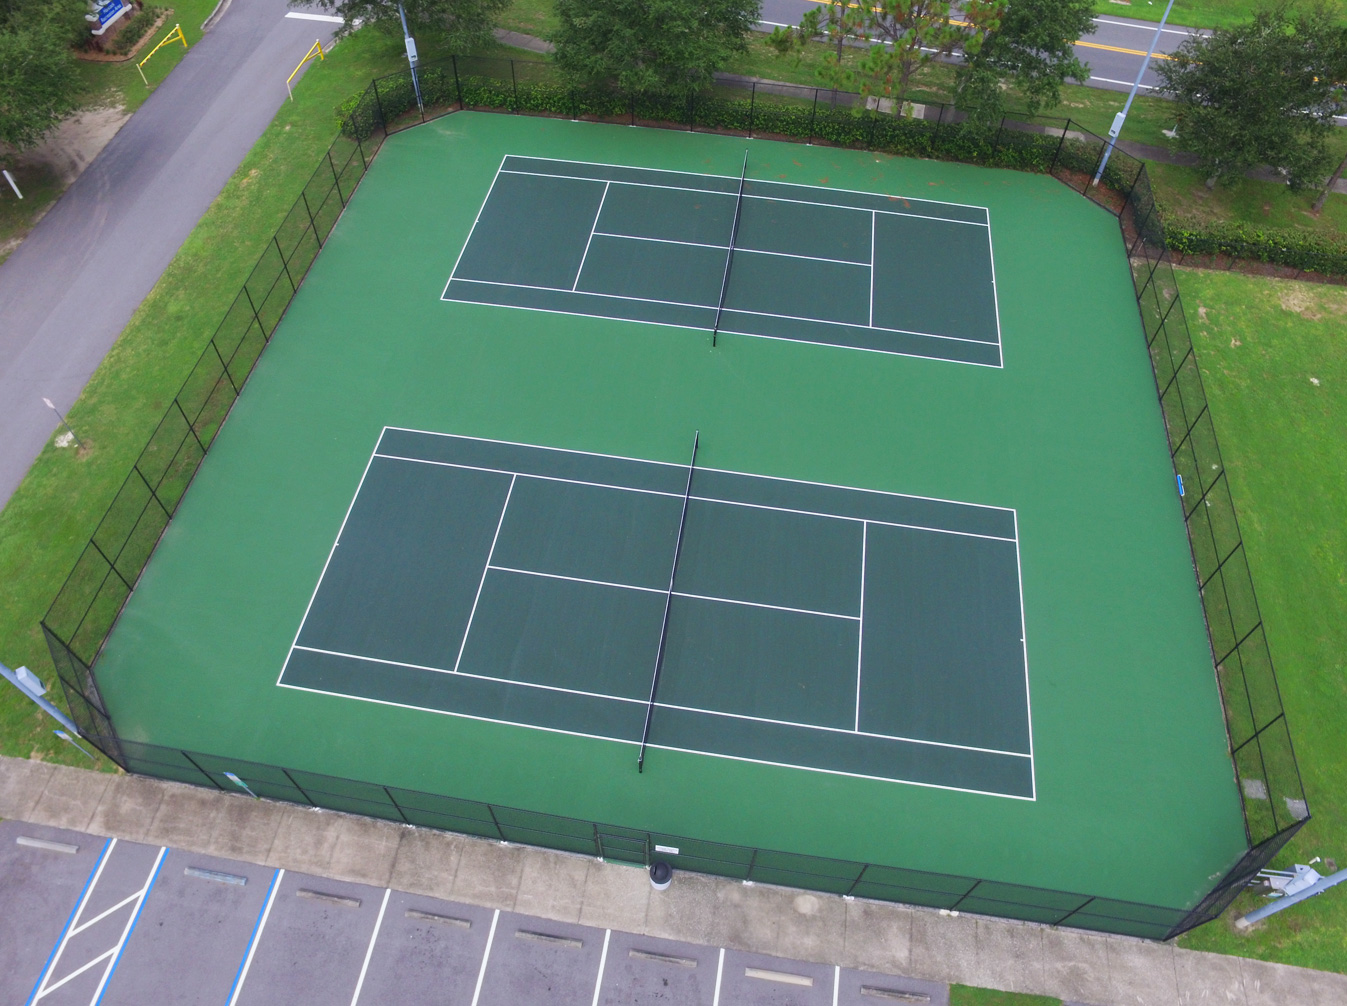 aerial image of resurfaced tennis courts